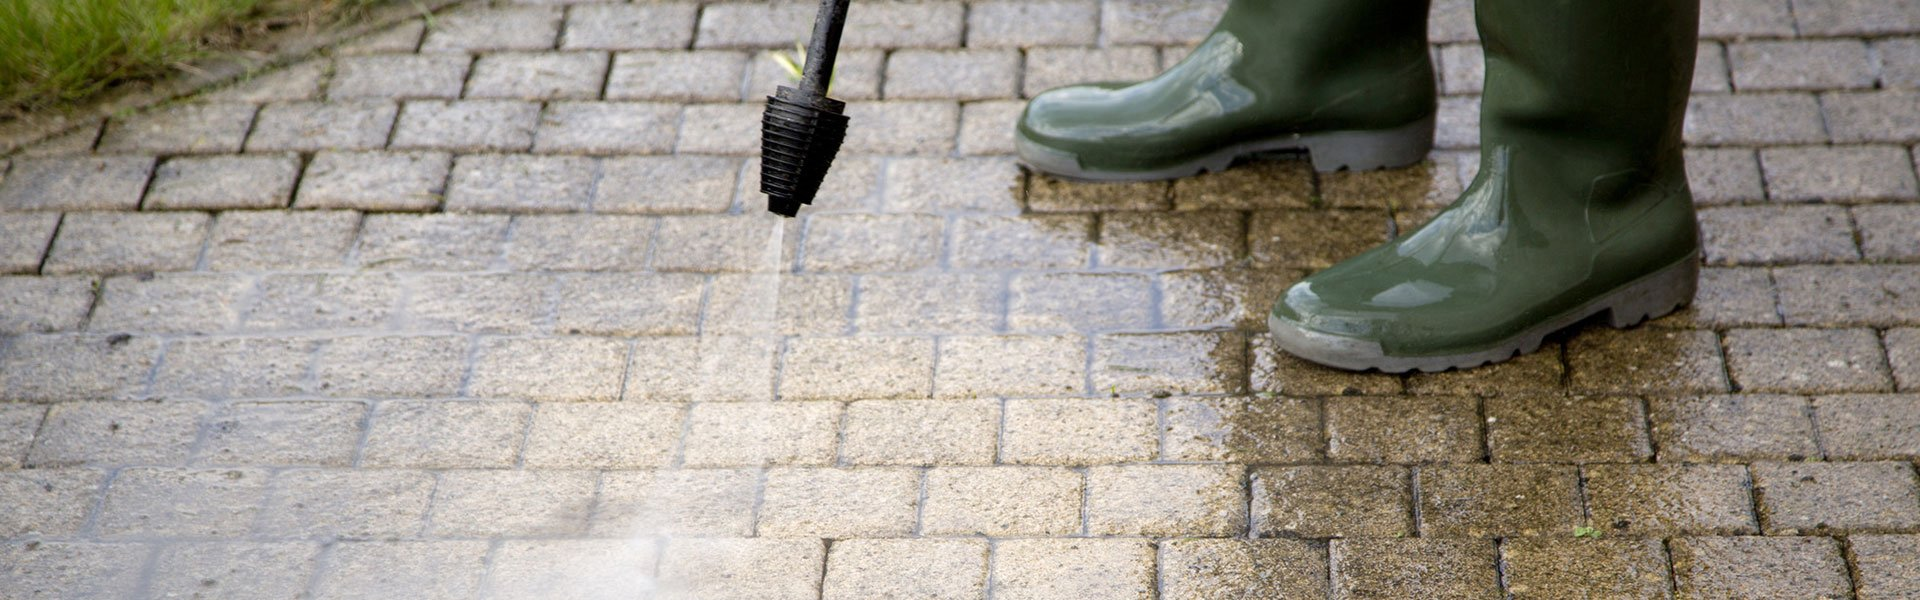 A Skilled Cleaner Using Pressure Washing System For Patio Cleaning